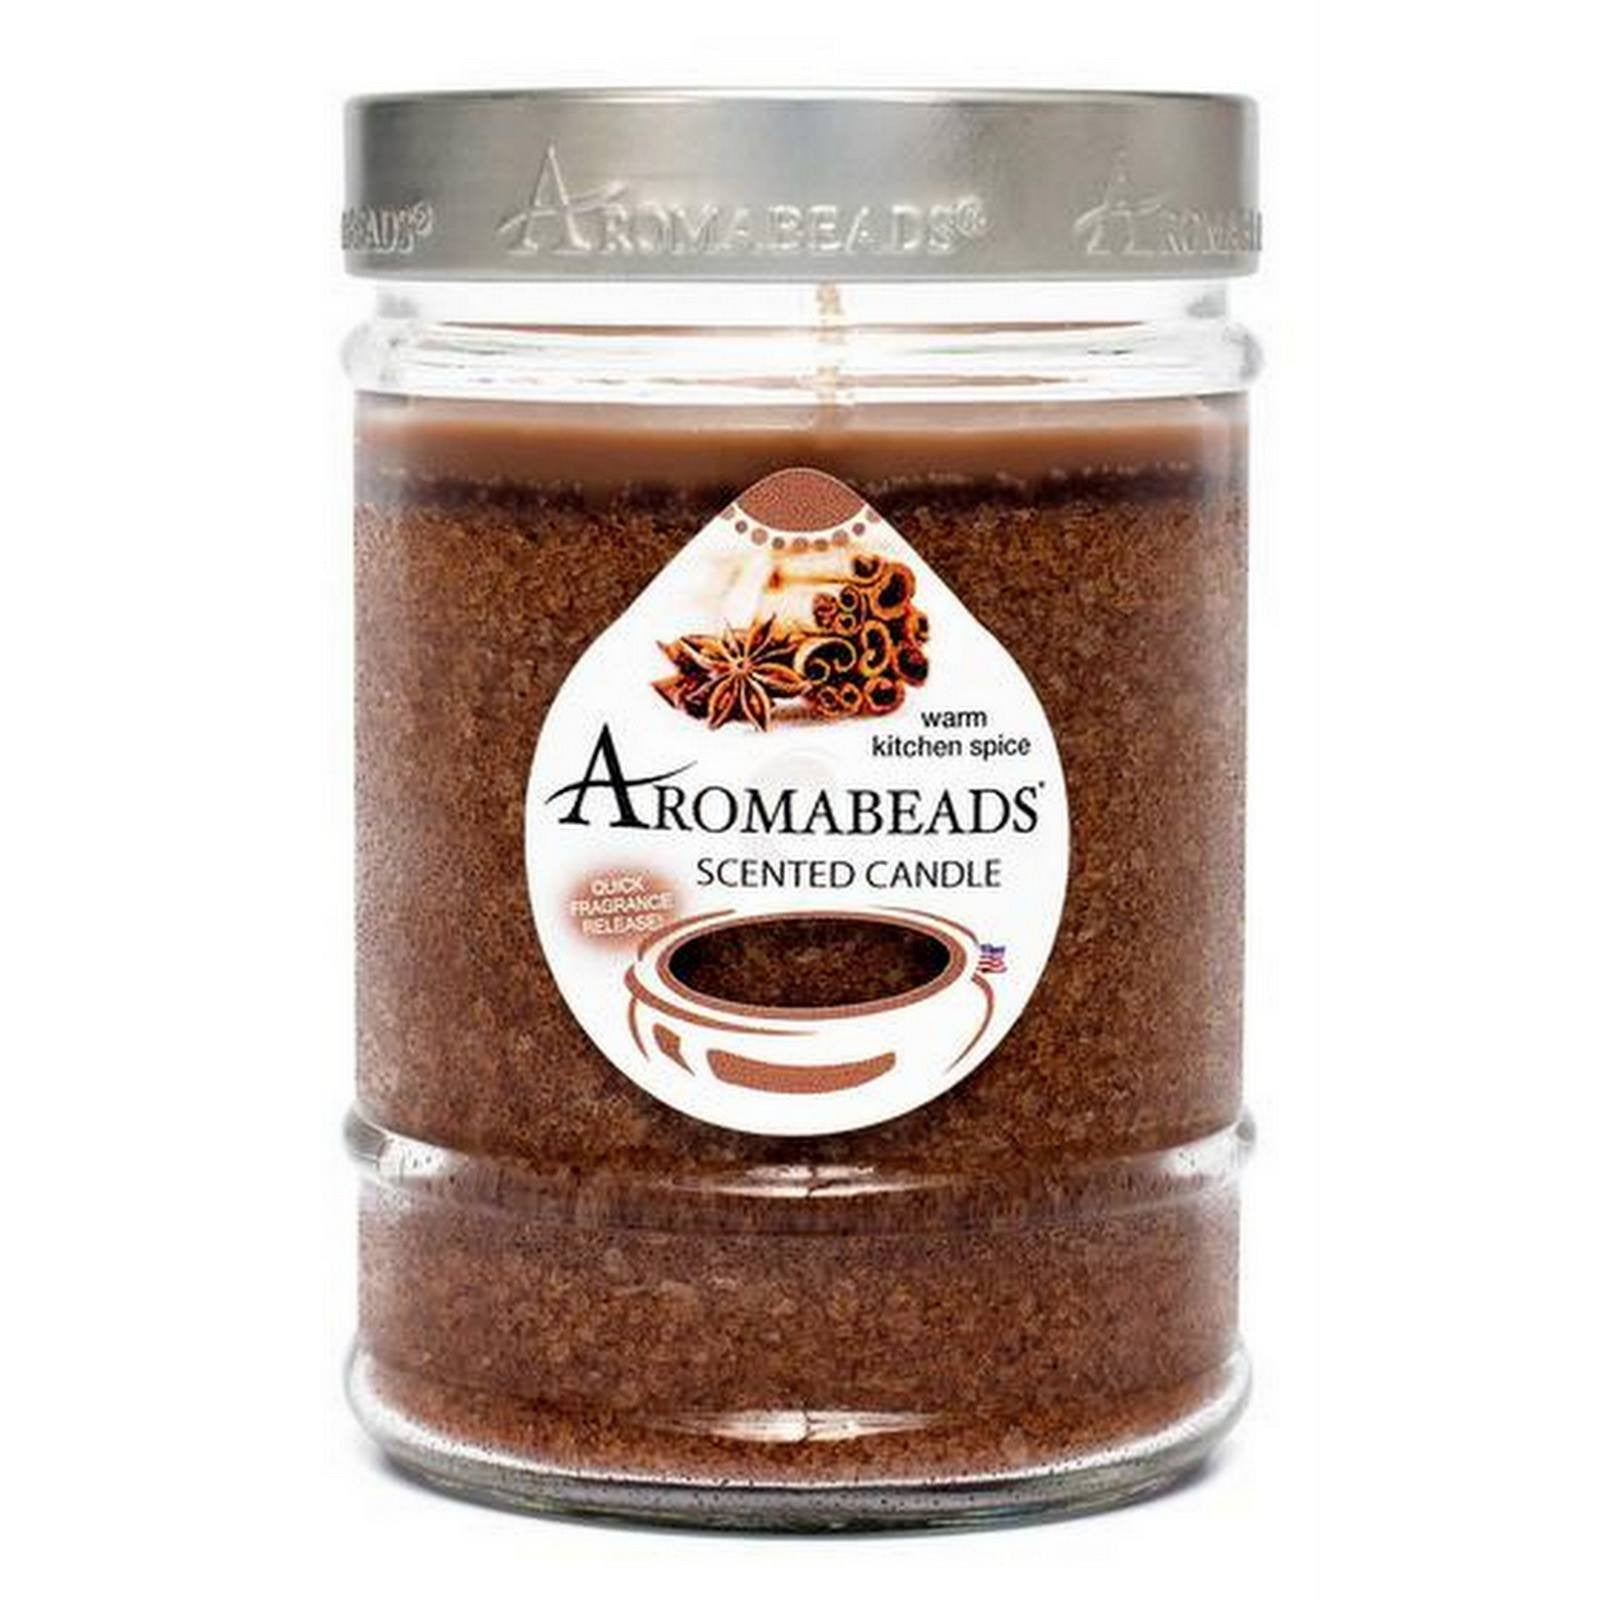 Aromabeads Warm Kitchen Spice Scented Canister Candle - Candlemart.com